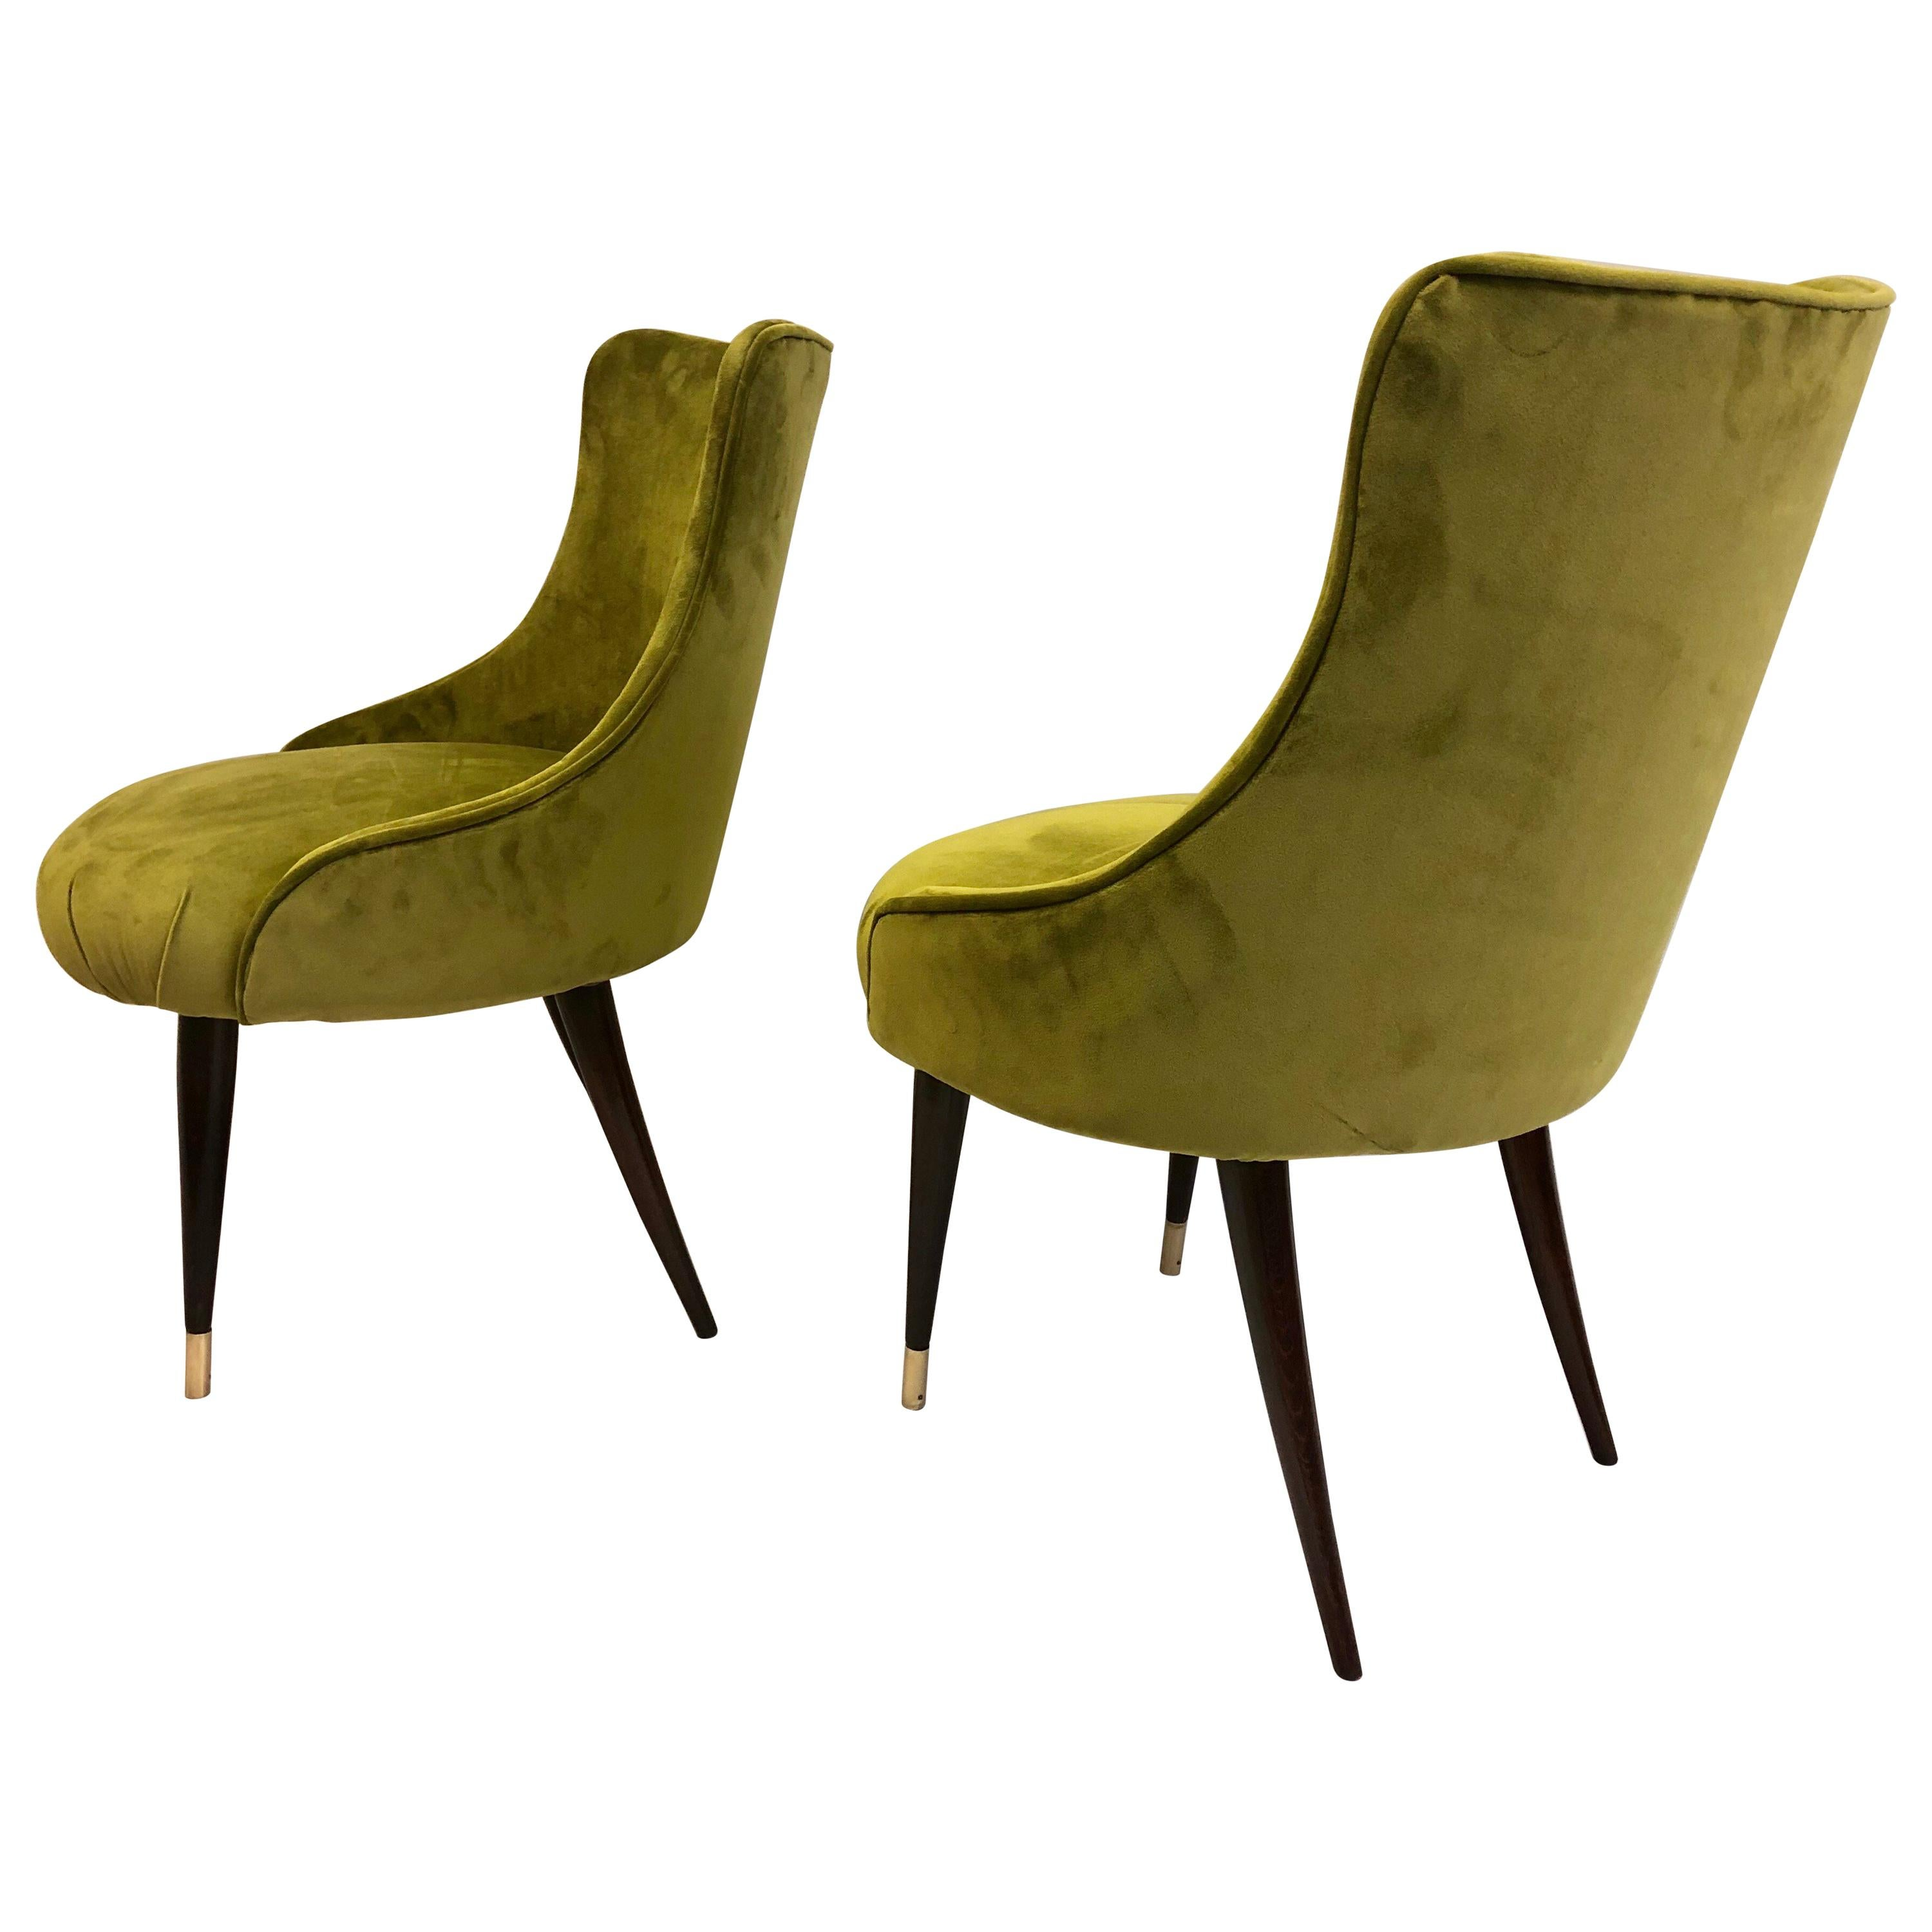 Pair of Italian Mid-Century Modern Lounge / Slipper Chairs by Guglielmo Ulrich